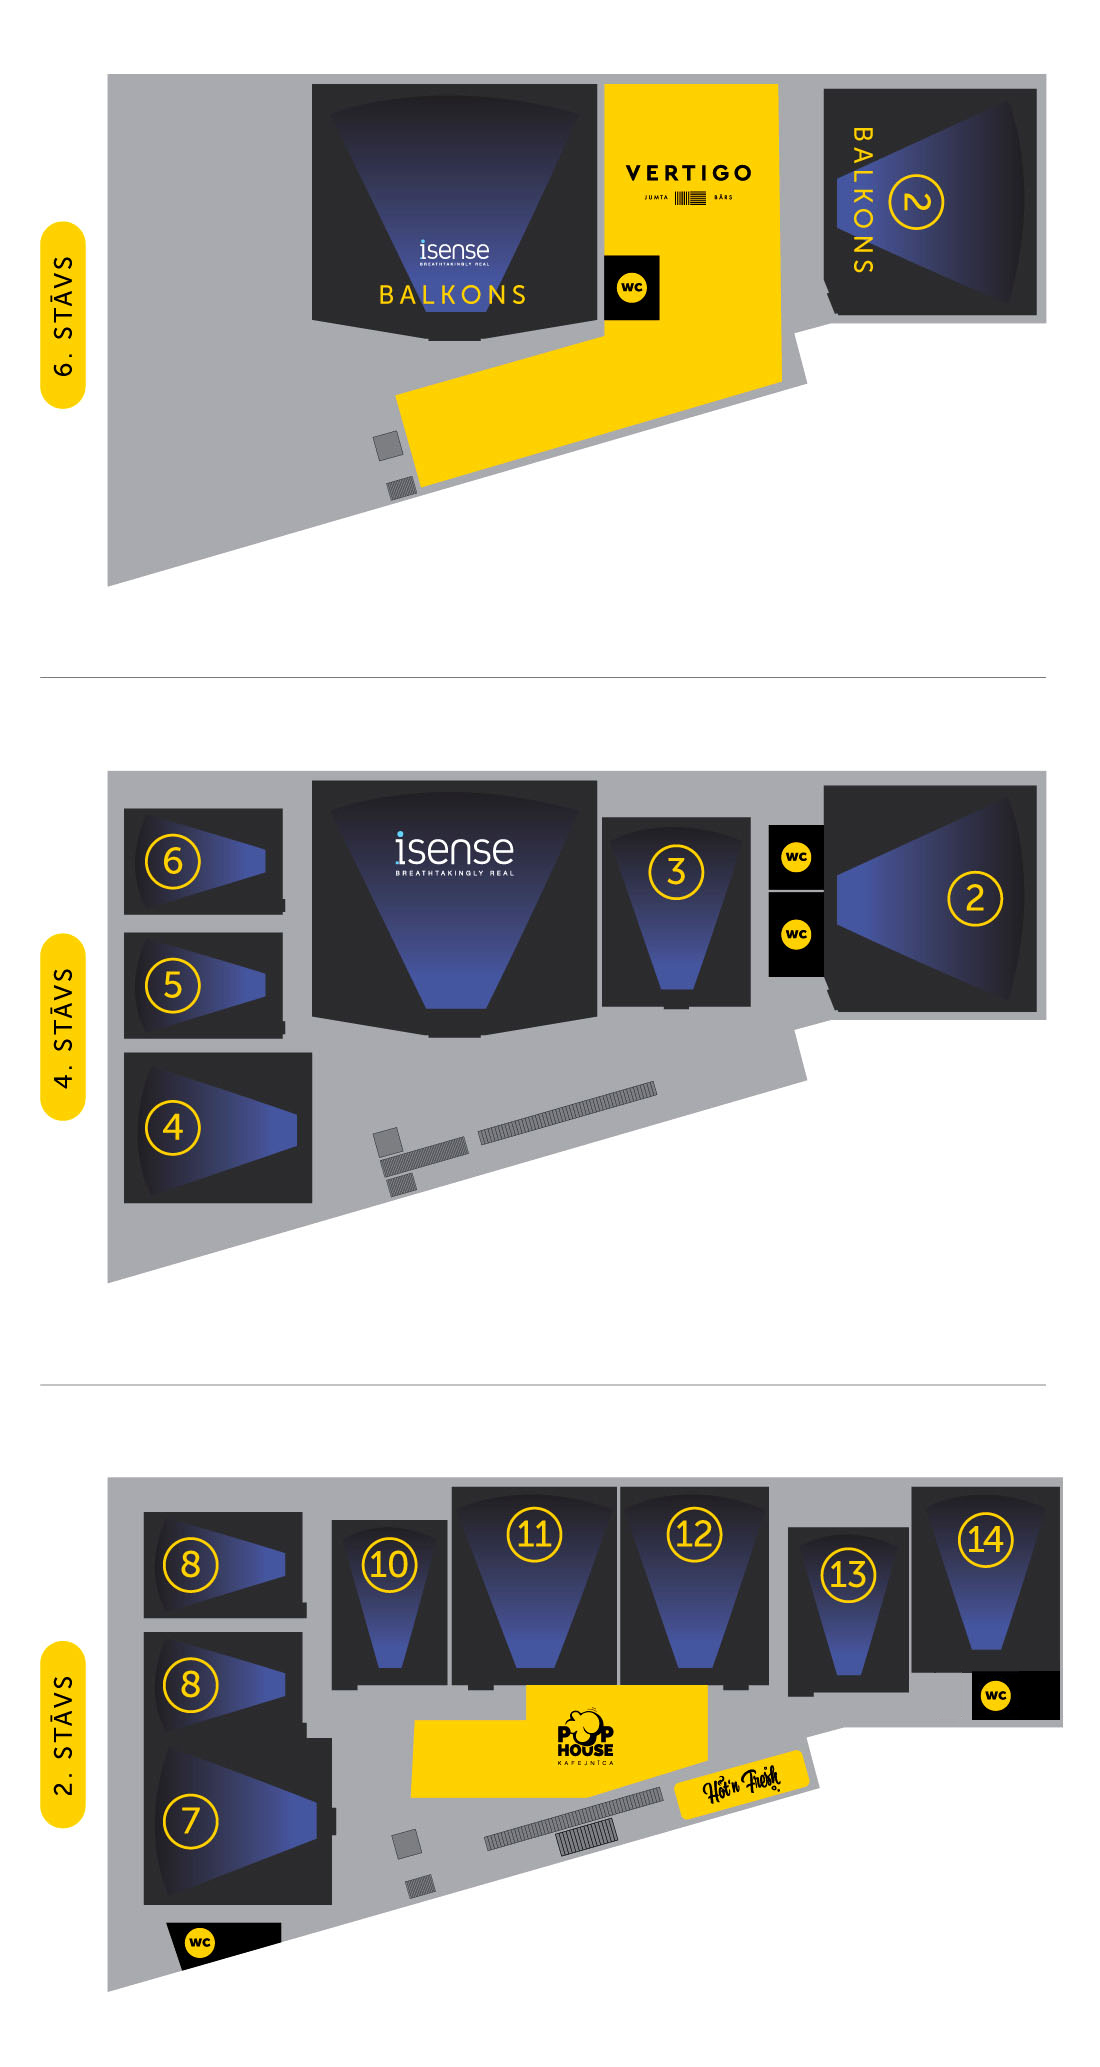 Kino Citadele - auditorium layouts